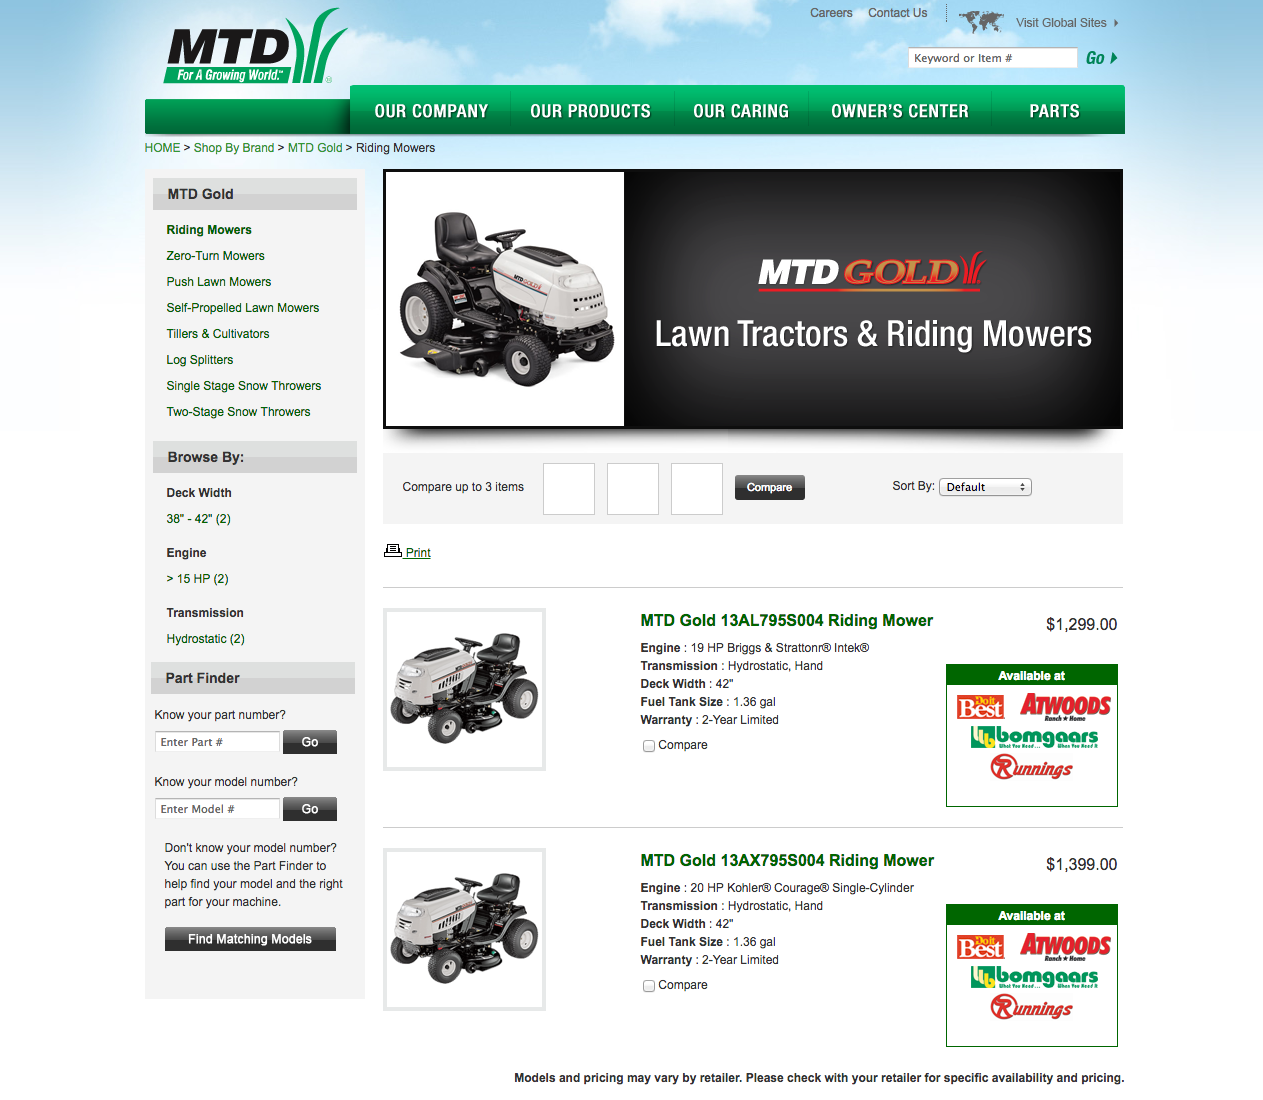 Shop mtd 42 in deck drive belt for riding lawn mowers at lowes com - Mtd Images Mtd Homepage About Mtd Mtd Lawn Tractors Riding Mowers